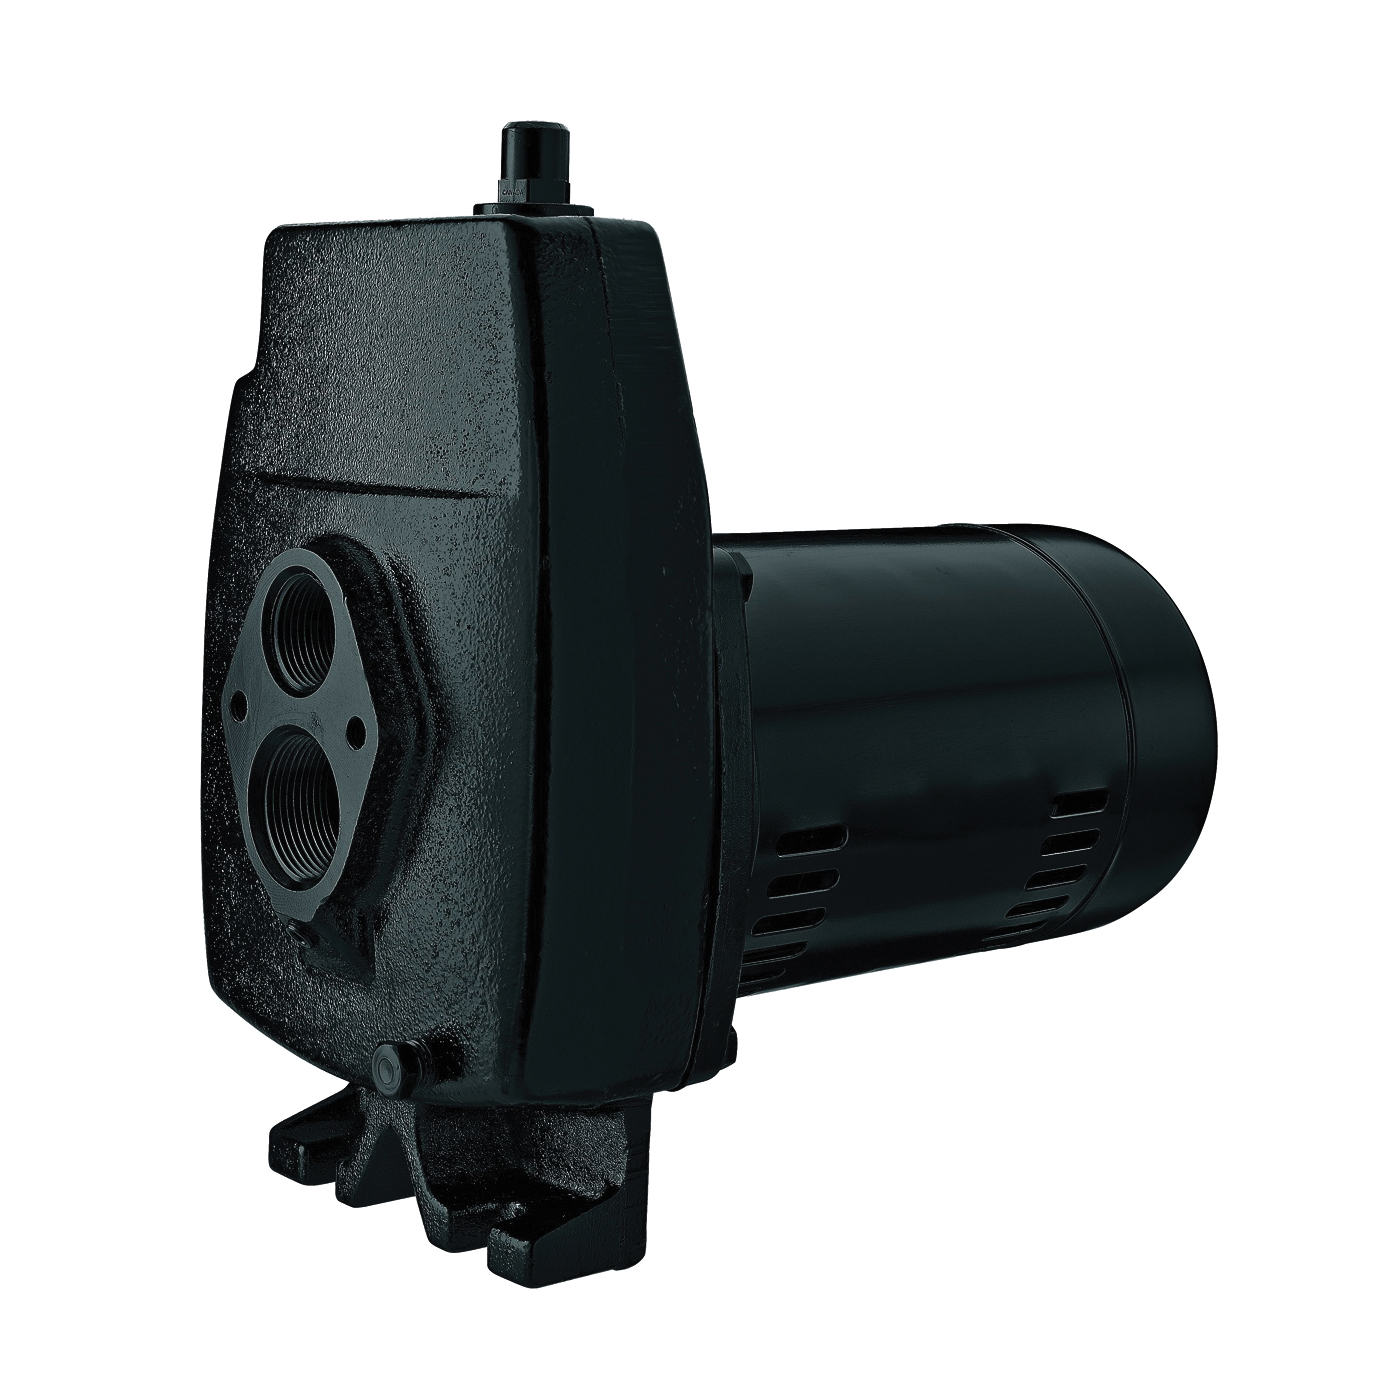 Picture of Flotec FP4212-08 Jet Pump, 4.95/9.9 A, 115/230 V, 0.5 hp, 1-1/4 in Suction, 1 in Discharge Connection, 5.9 gpm